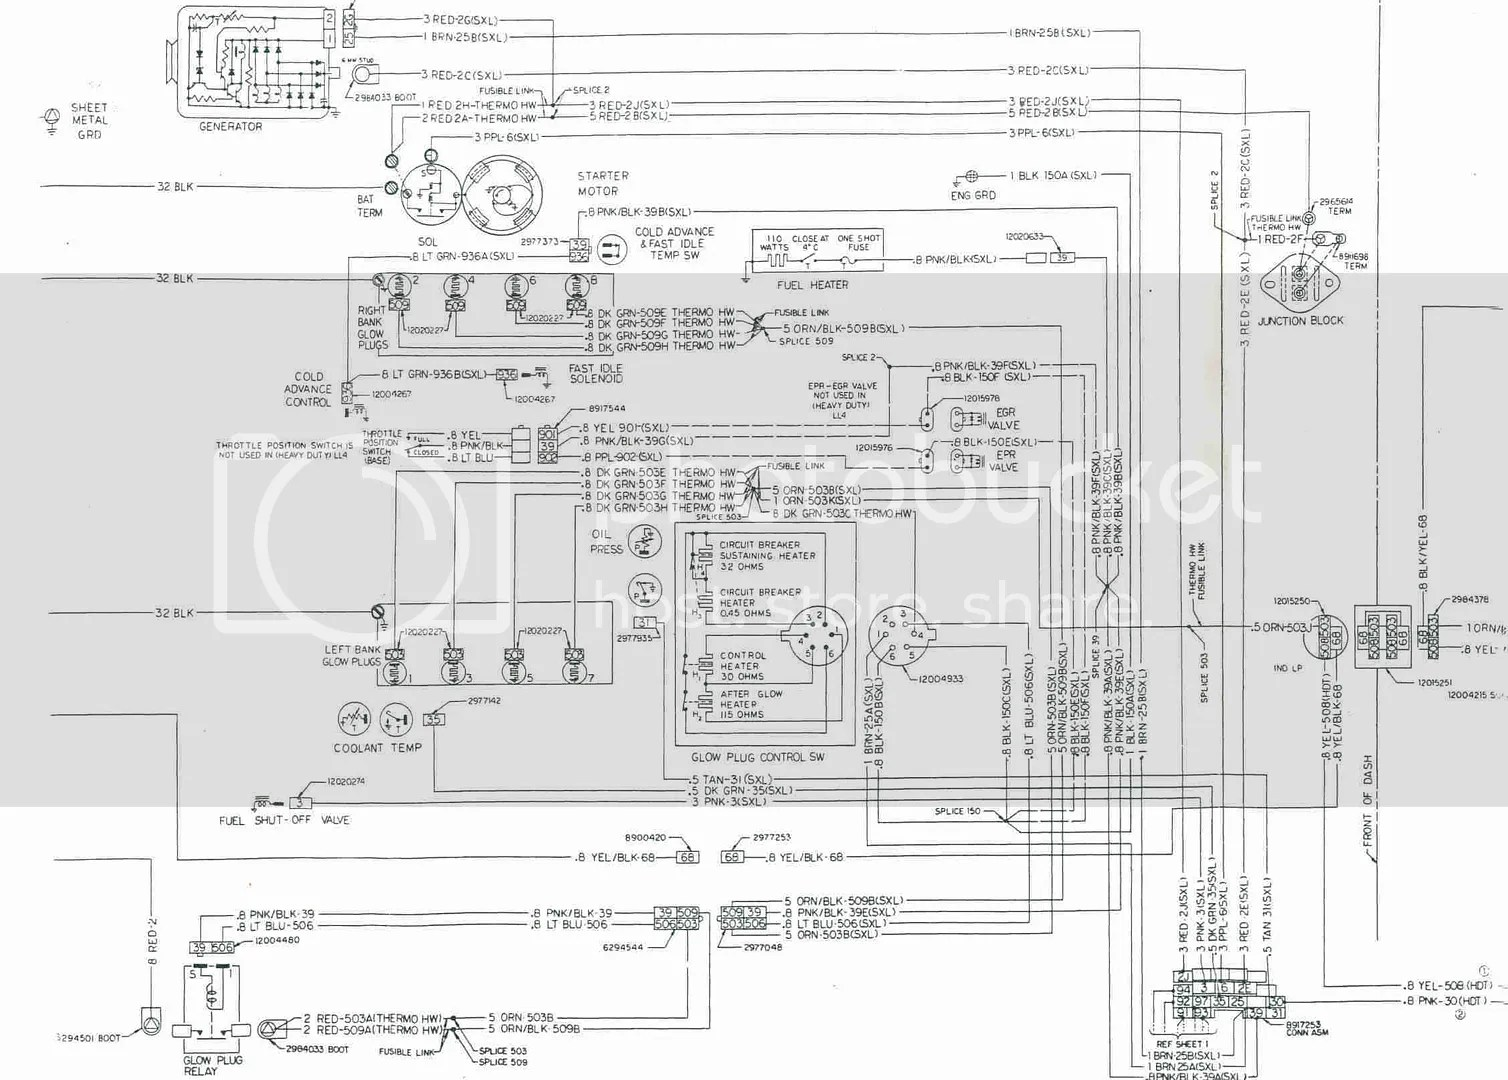 Wiring Diagram For 84 6 2sel Stick